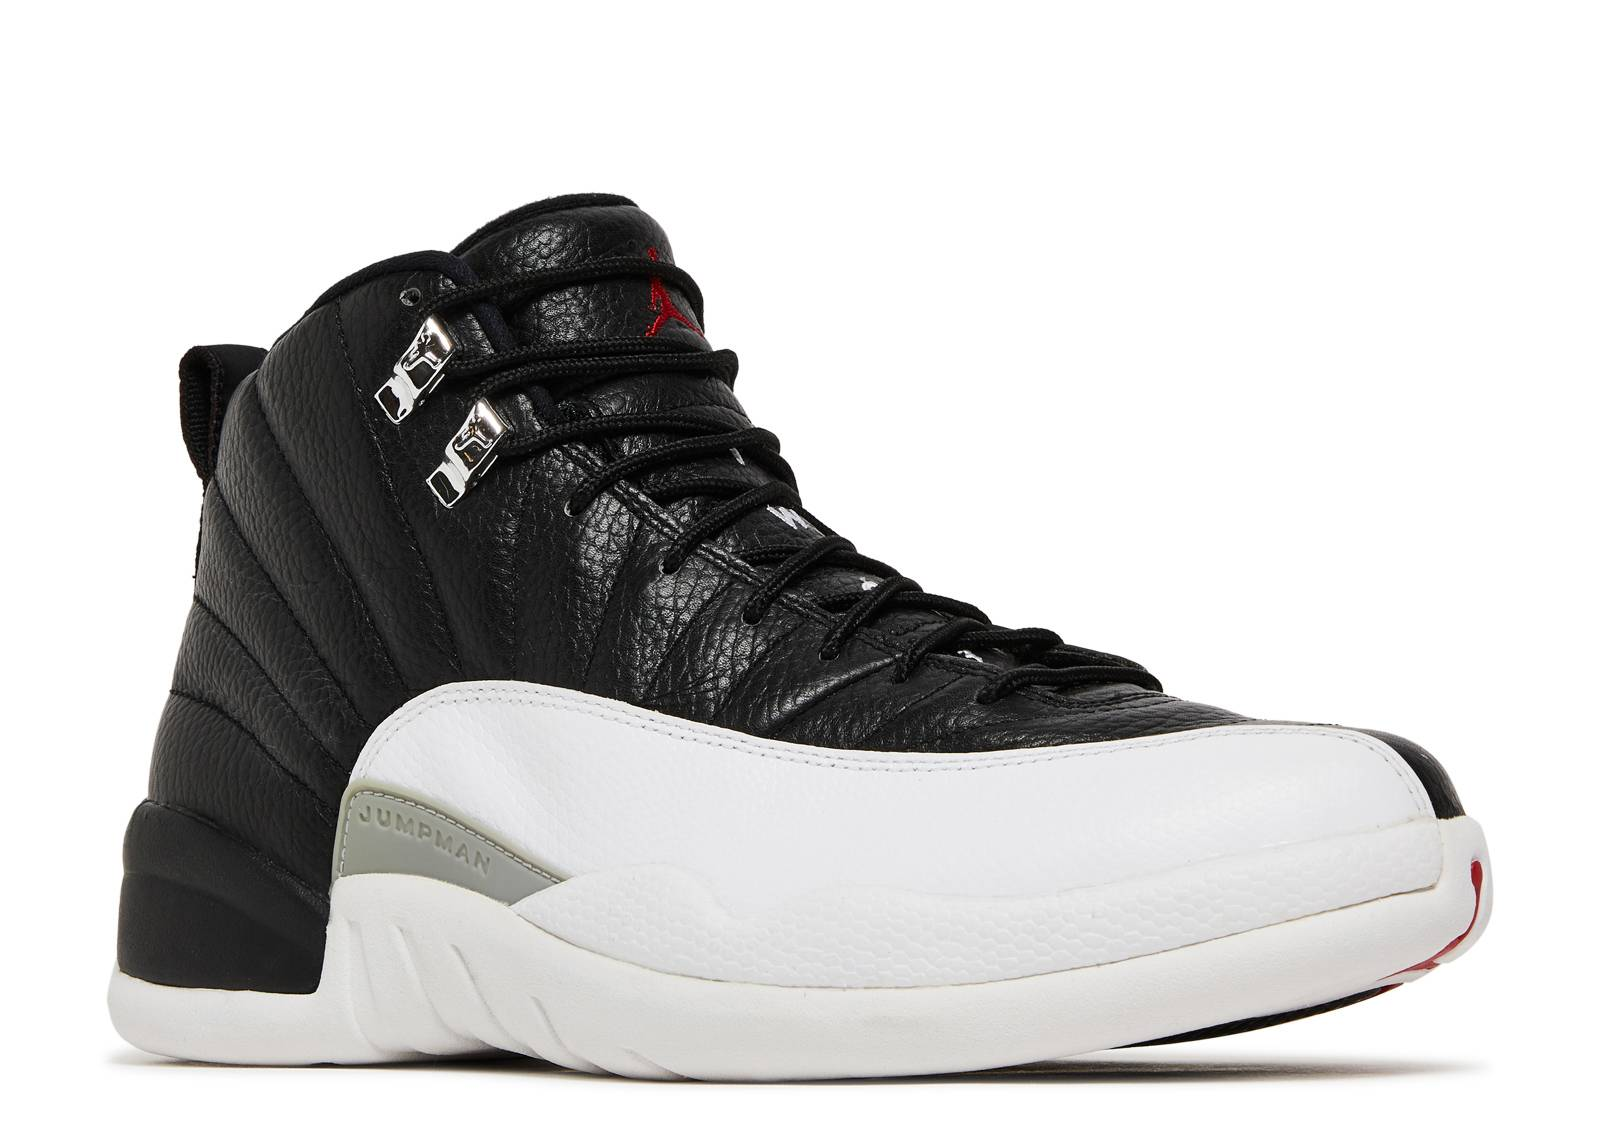 save off 374f0 c8880 coupon for air jordan 12 retro playoff 2012 release cfd26 9ba47